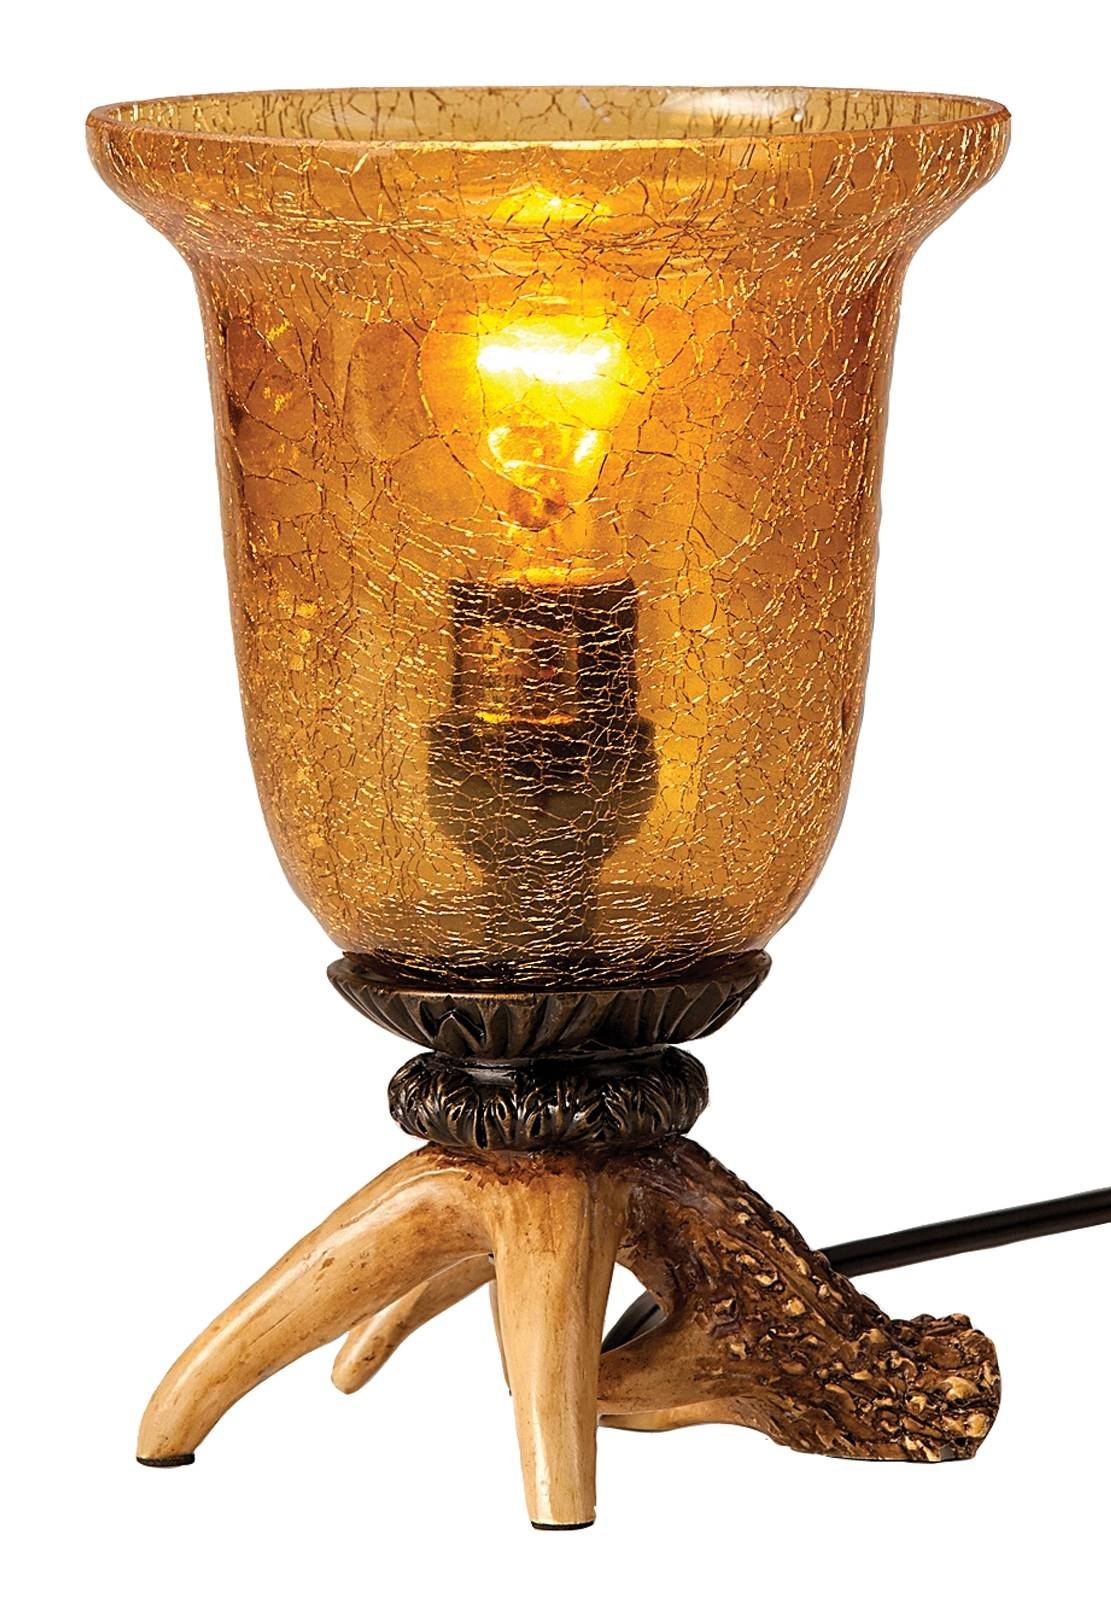 Montana Silversmiths Antler Lamp with Amber Glass Shade